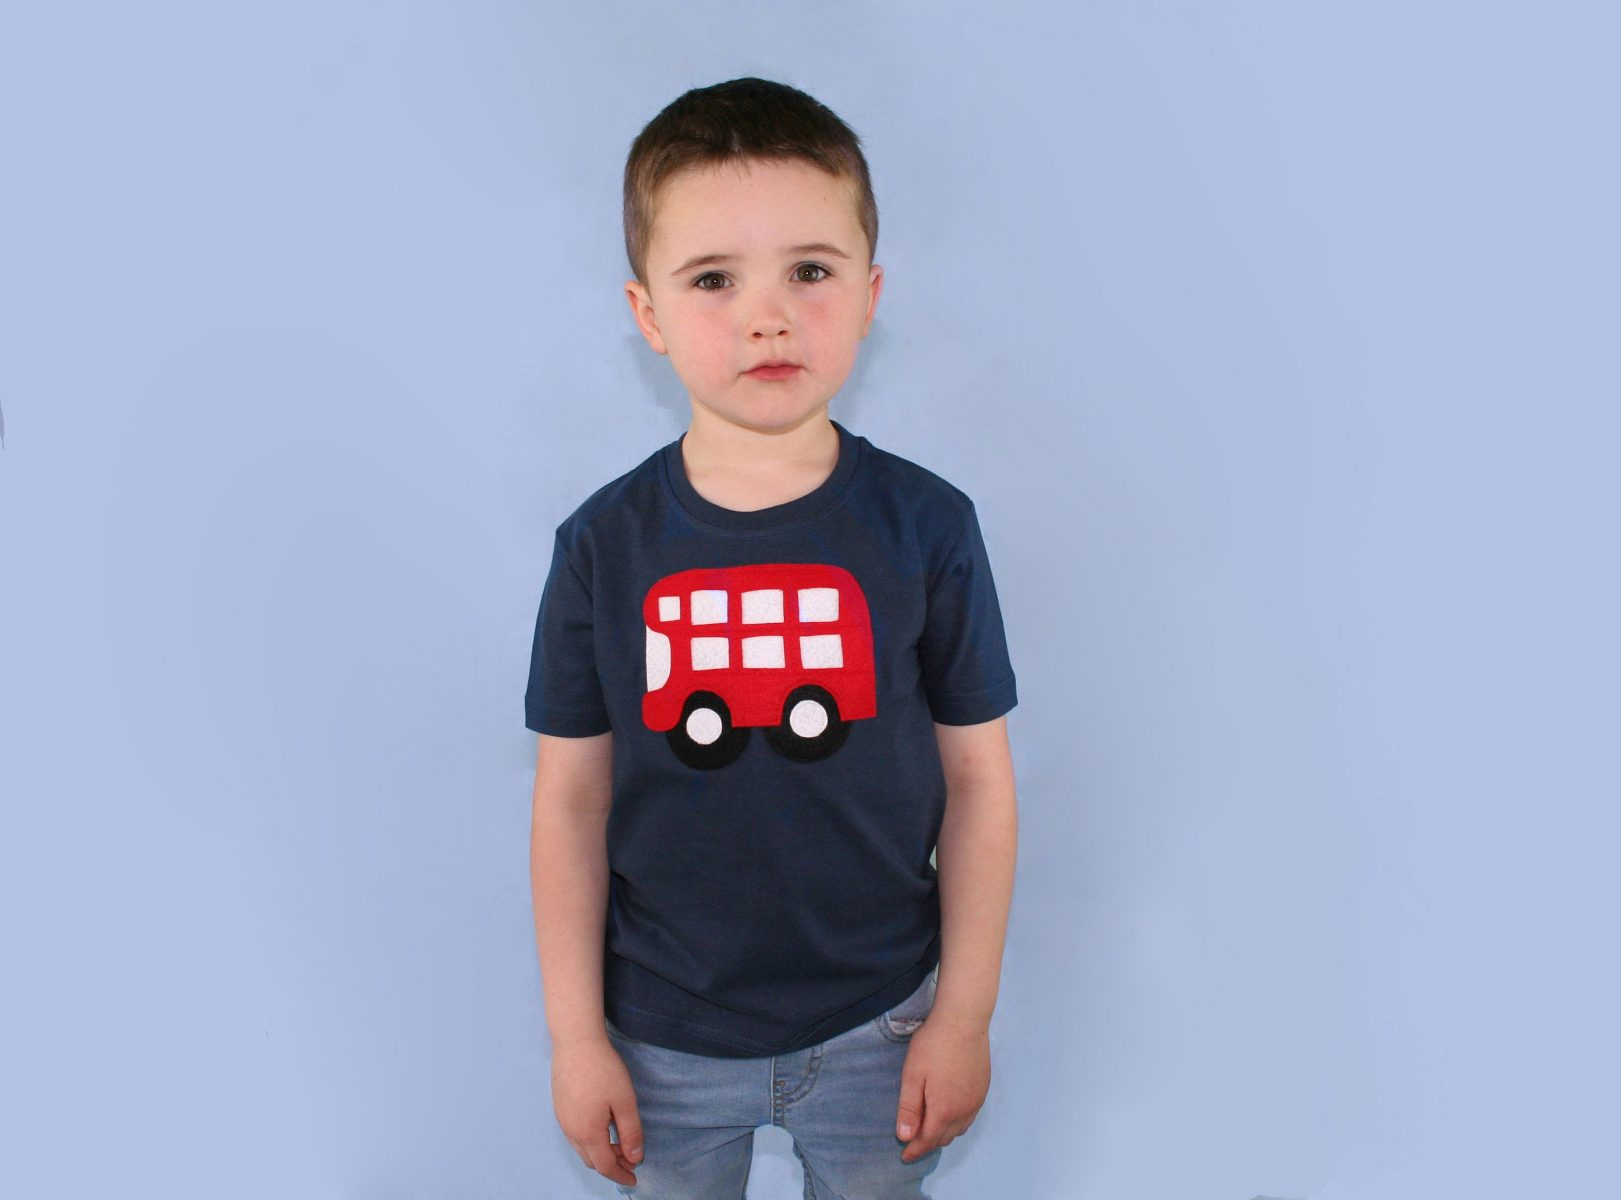 Buy Bus T-Shirt, Boys T-Shirt, Kids T-Shirt, Boys Top, Boys Tees, Boys  Clothing, Boys Clothes, – Urban Makers by Wee Clothing - Urban Makers -  Next day delivery available